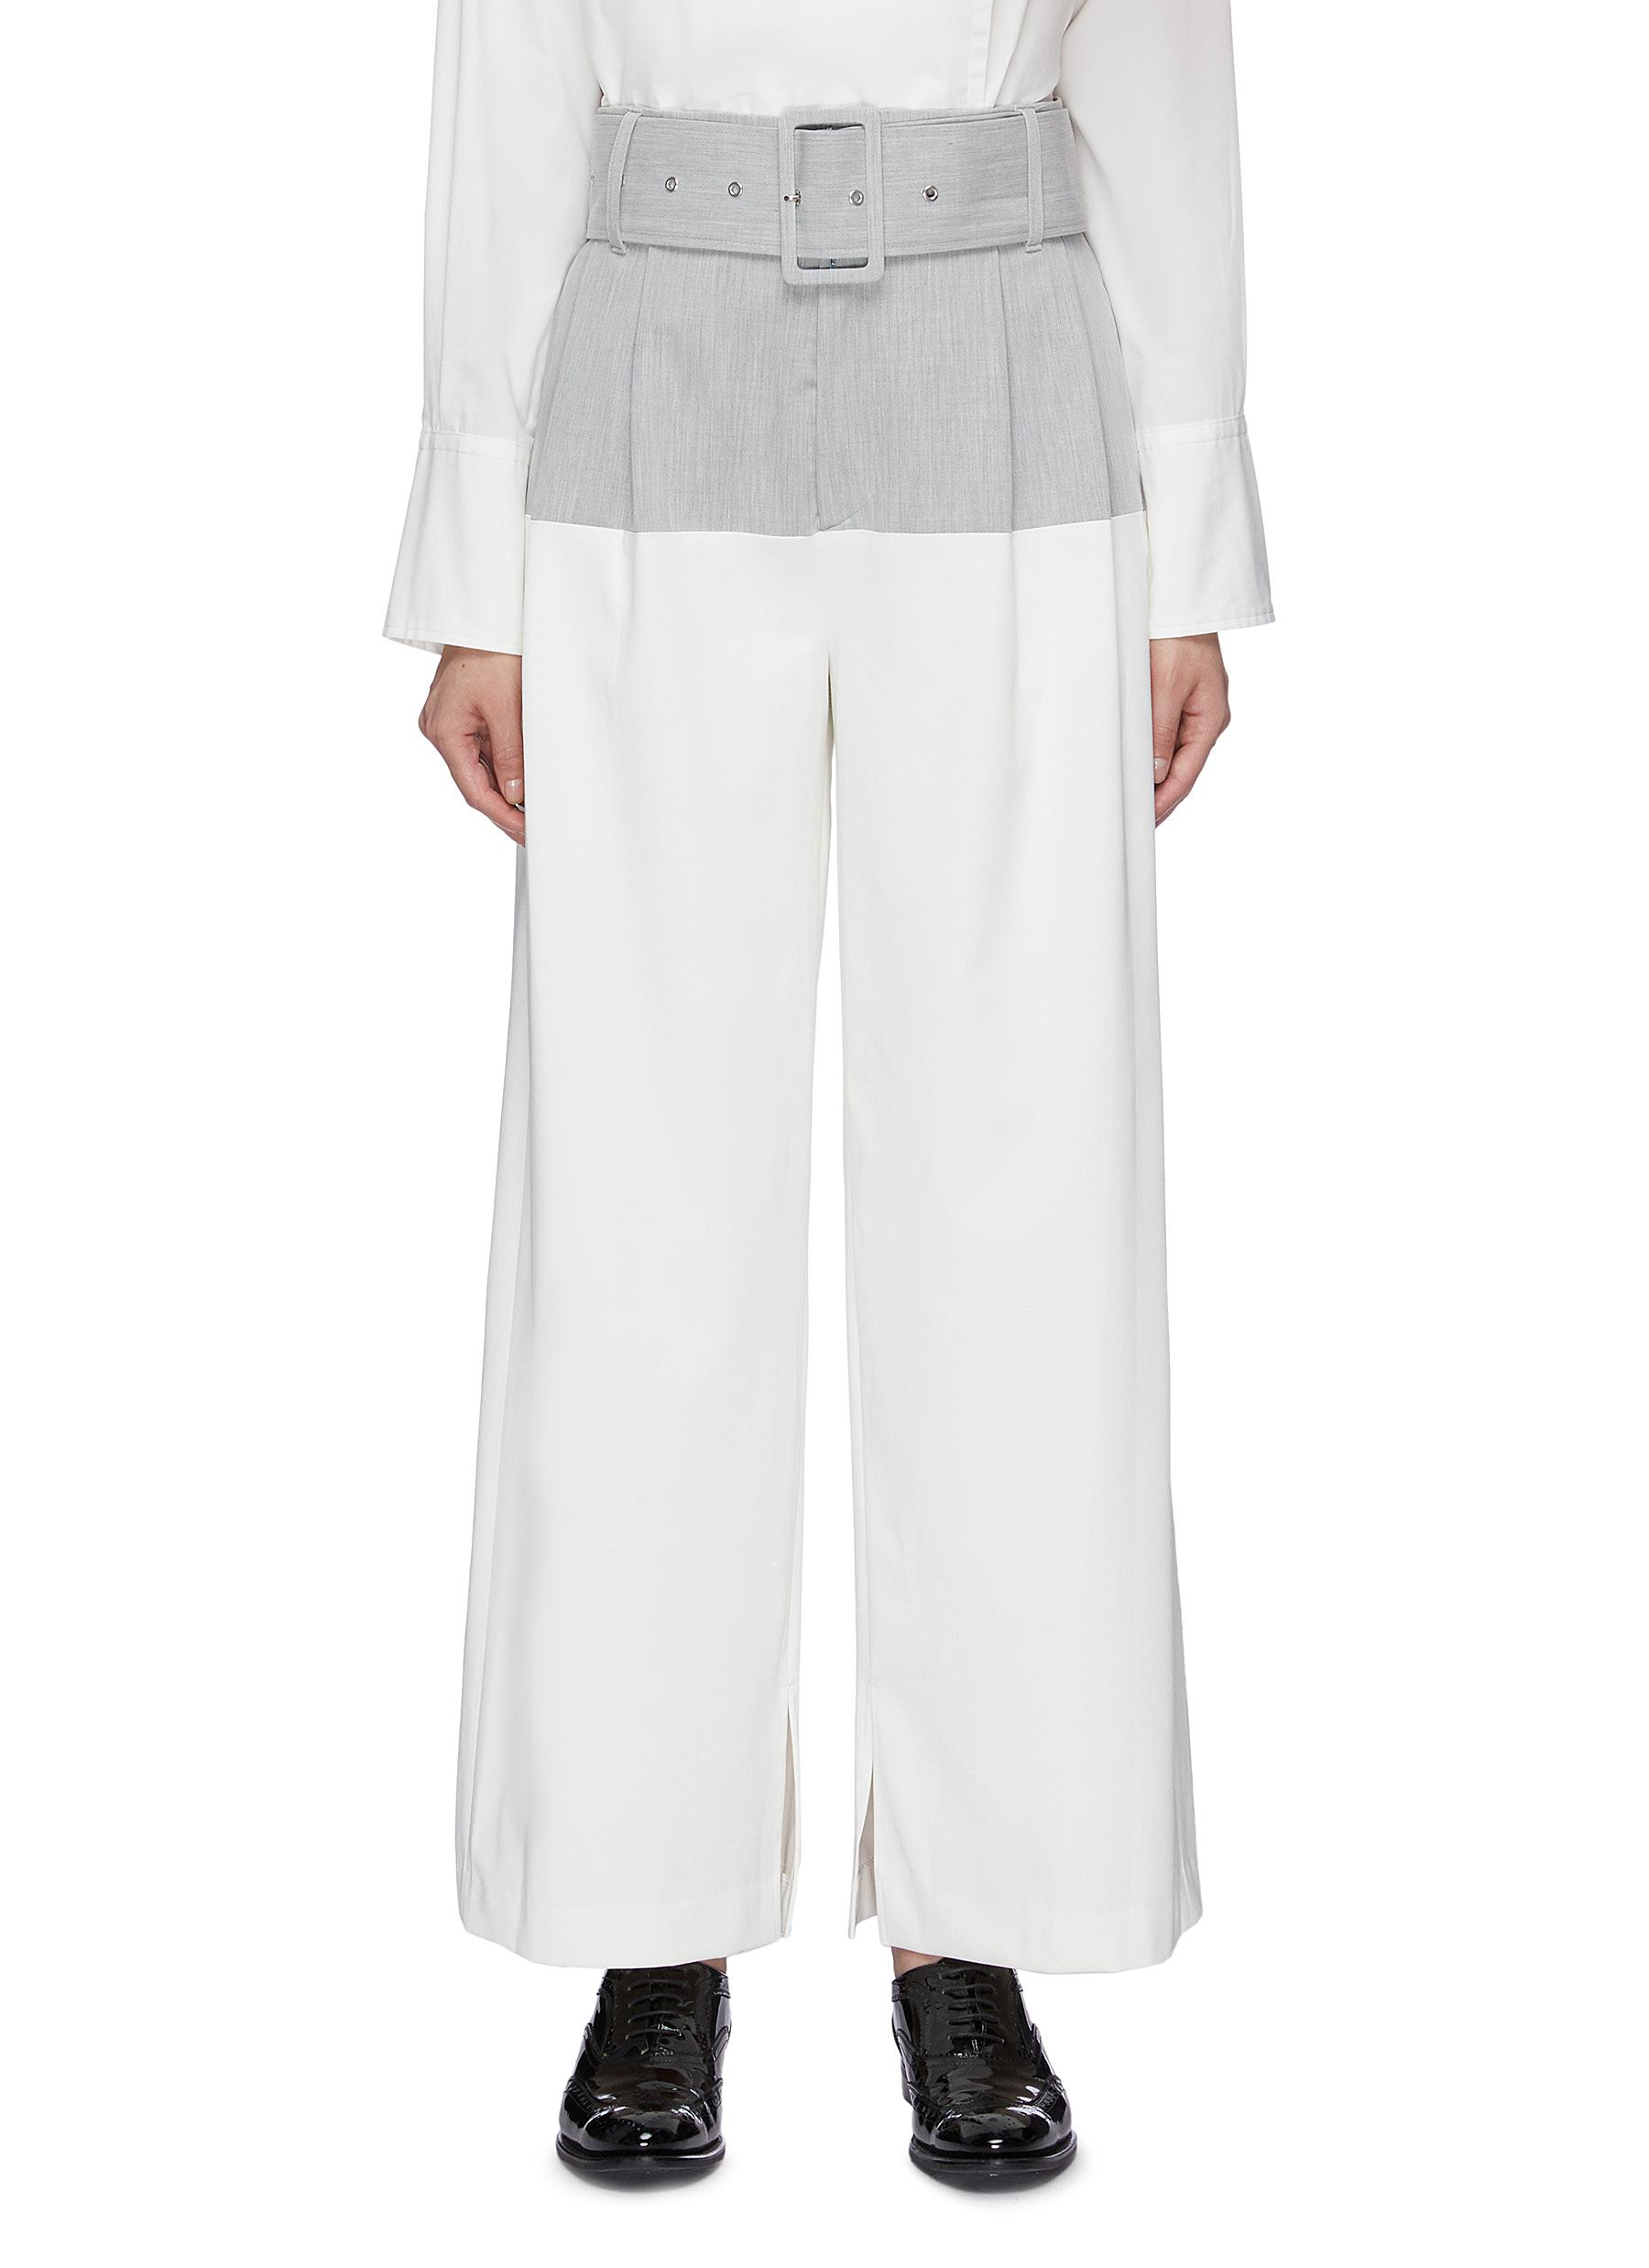 Belted colourblock wide leg pants by The Keiji